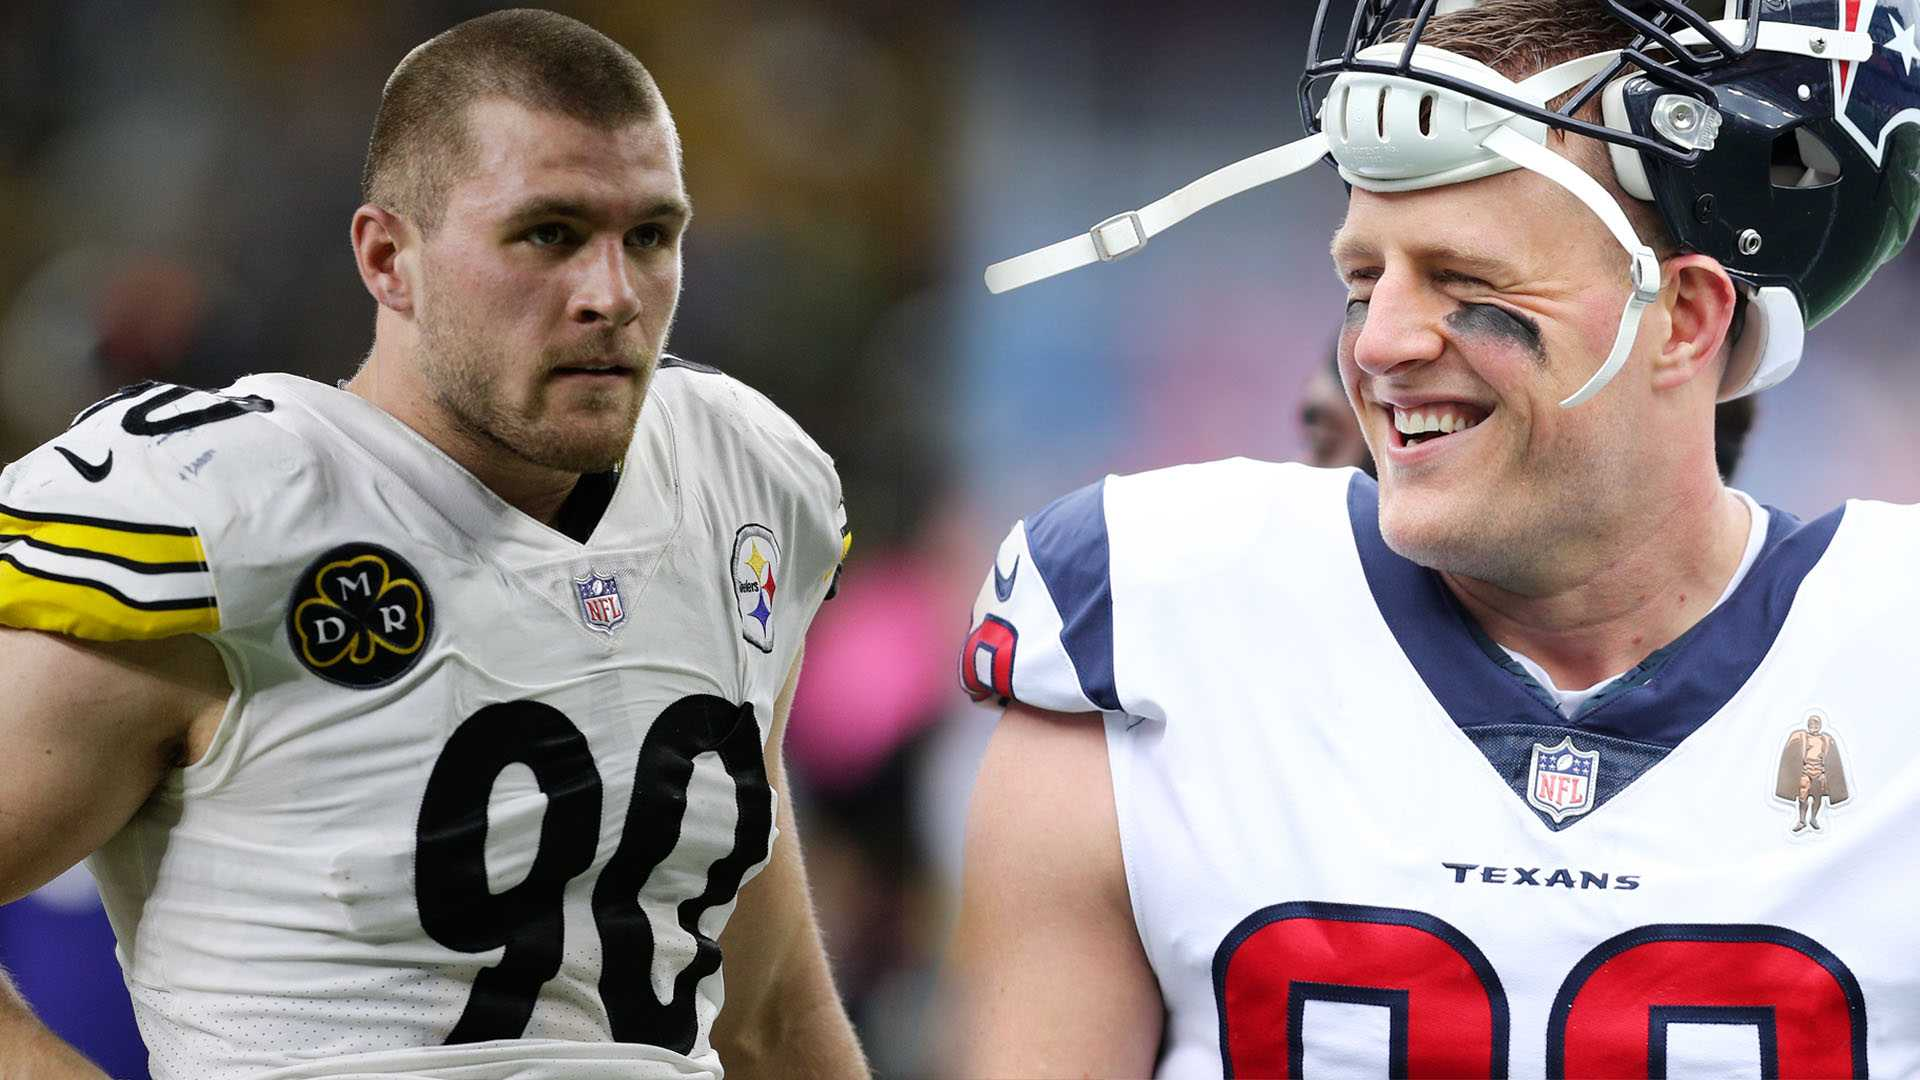 The Watt brothers are in a constant battle for bragging rights